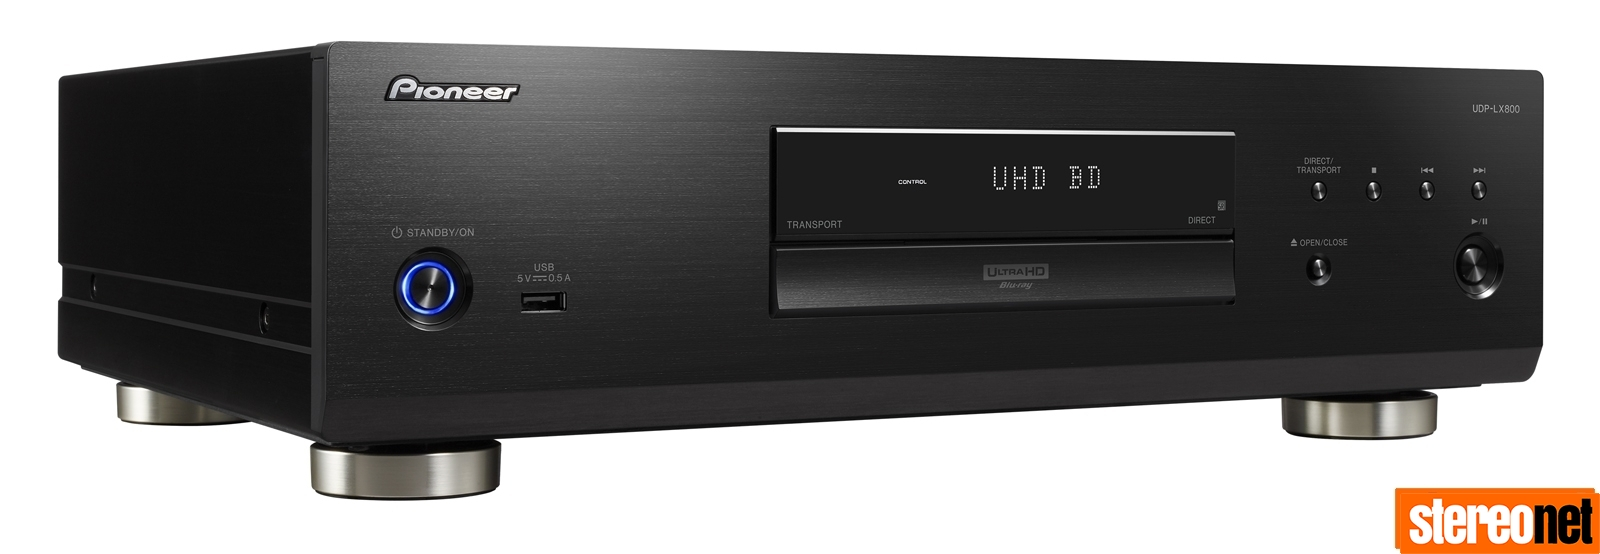 Pioneer UDP-LX800 Review